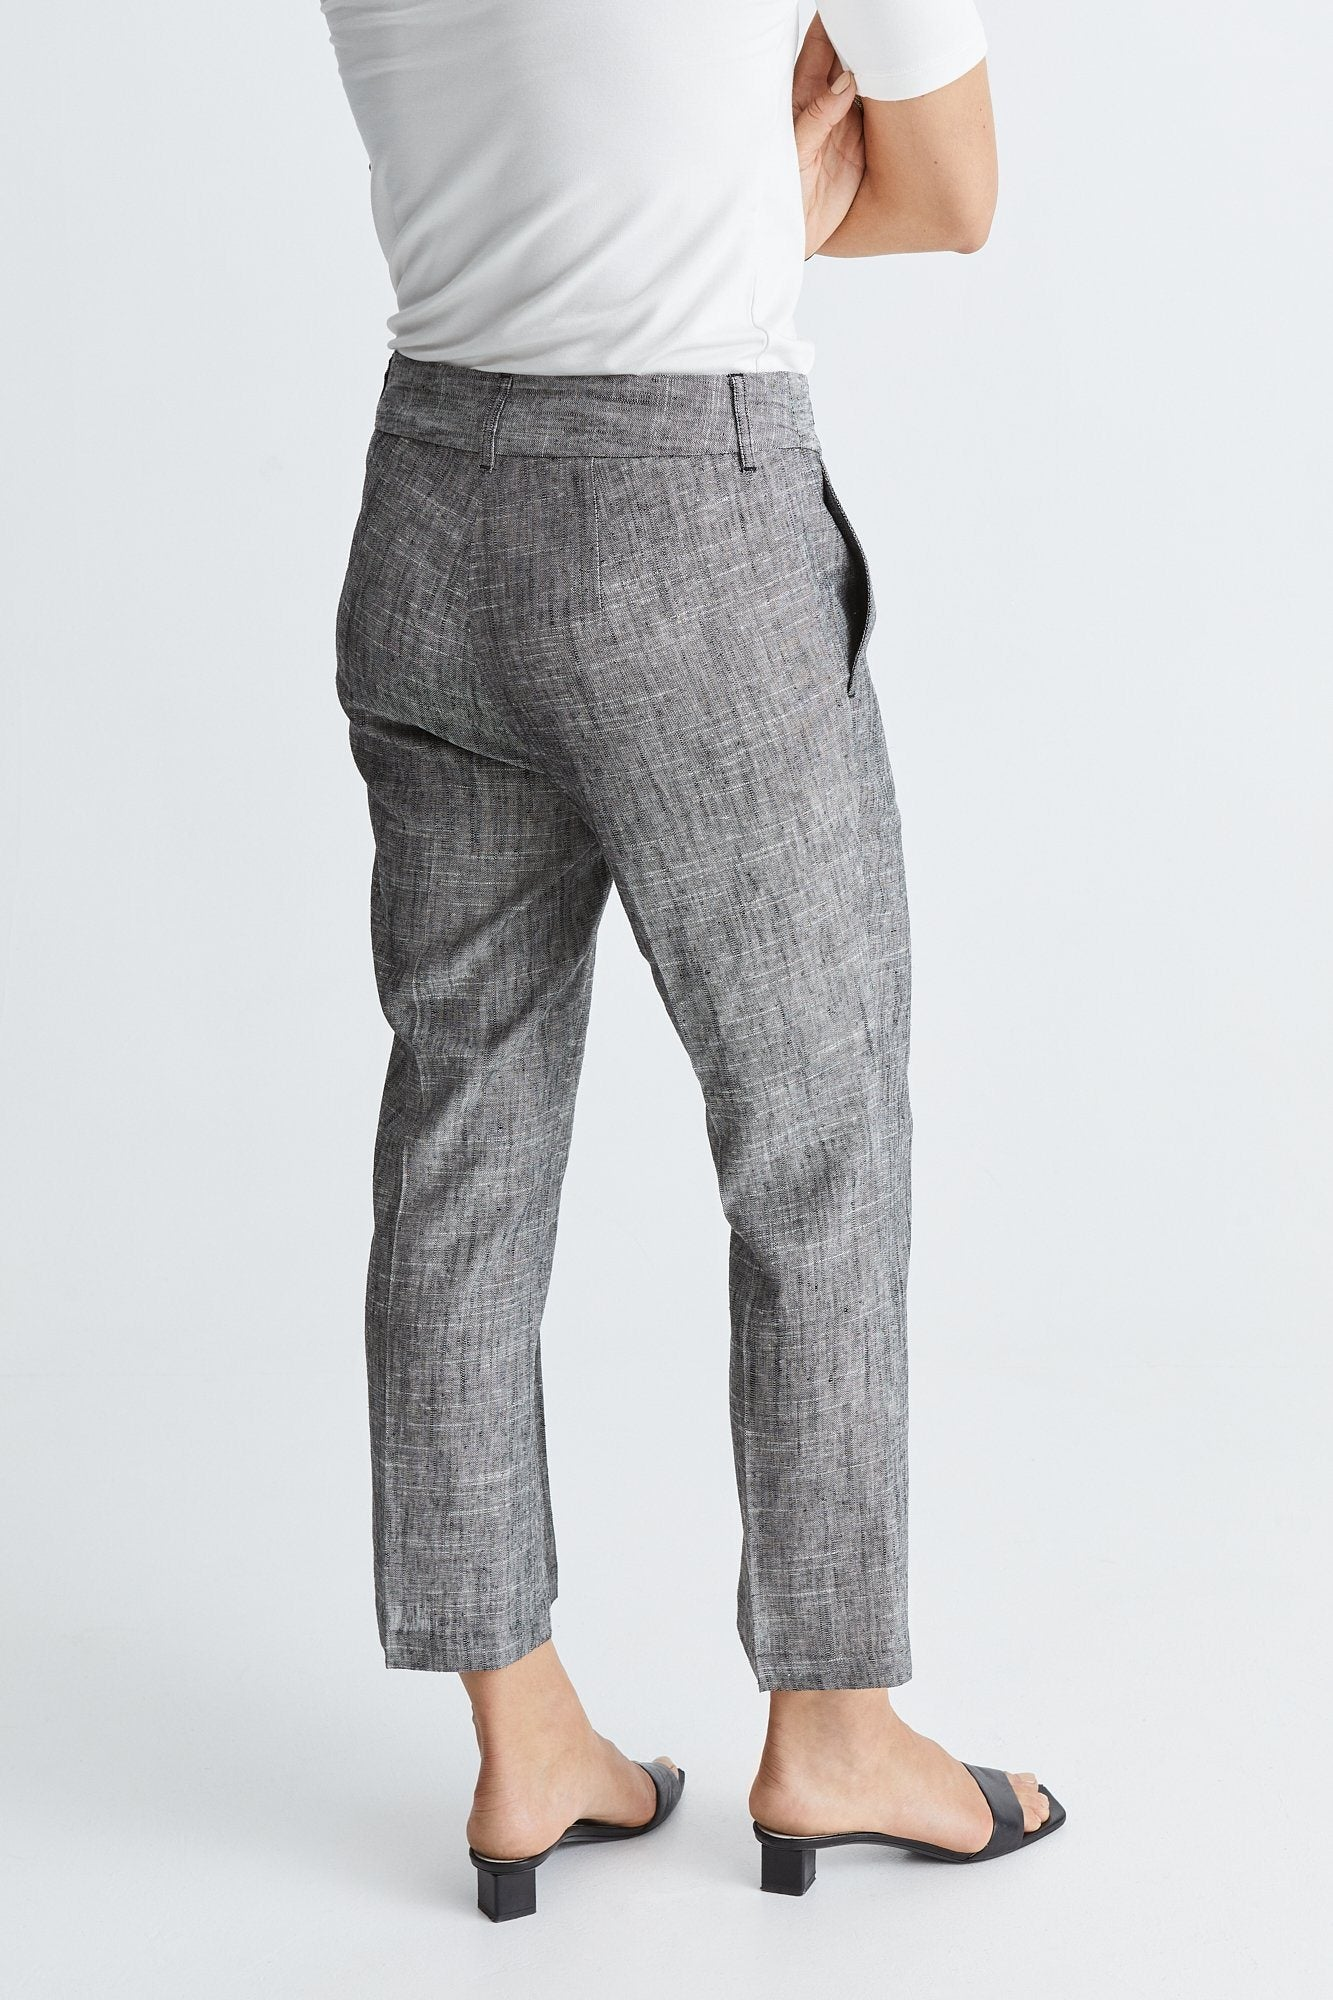 BRYDGES TROUSERS - BLACK LINEN Trousers Stylein